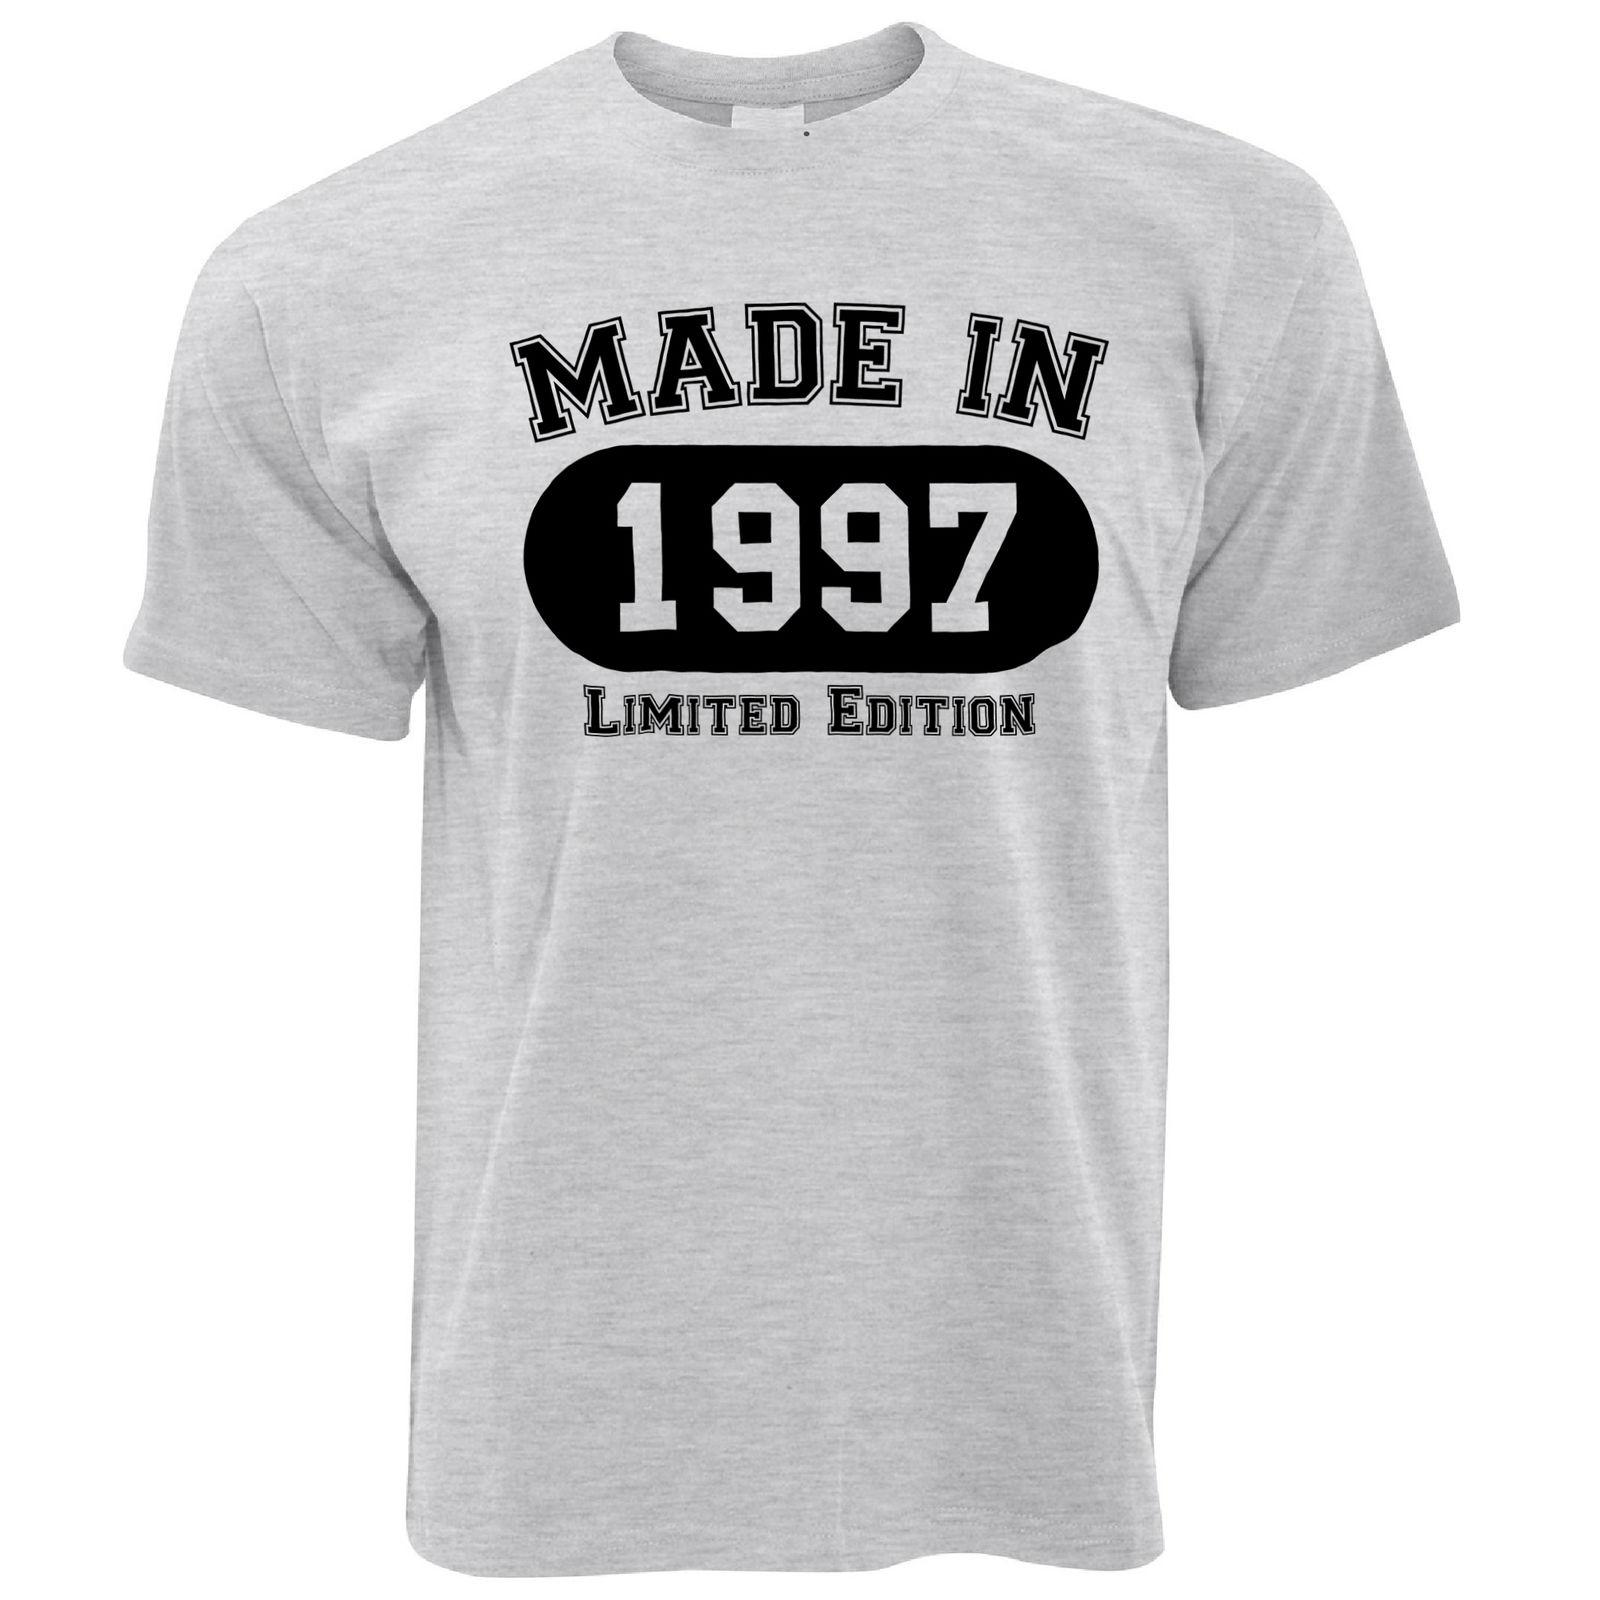 21st Birthday Mens T Shirt Made In 1997 Limited Edition Printed Gift Idea Make Shirts Designs From Nkotshirts 1056